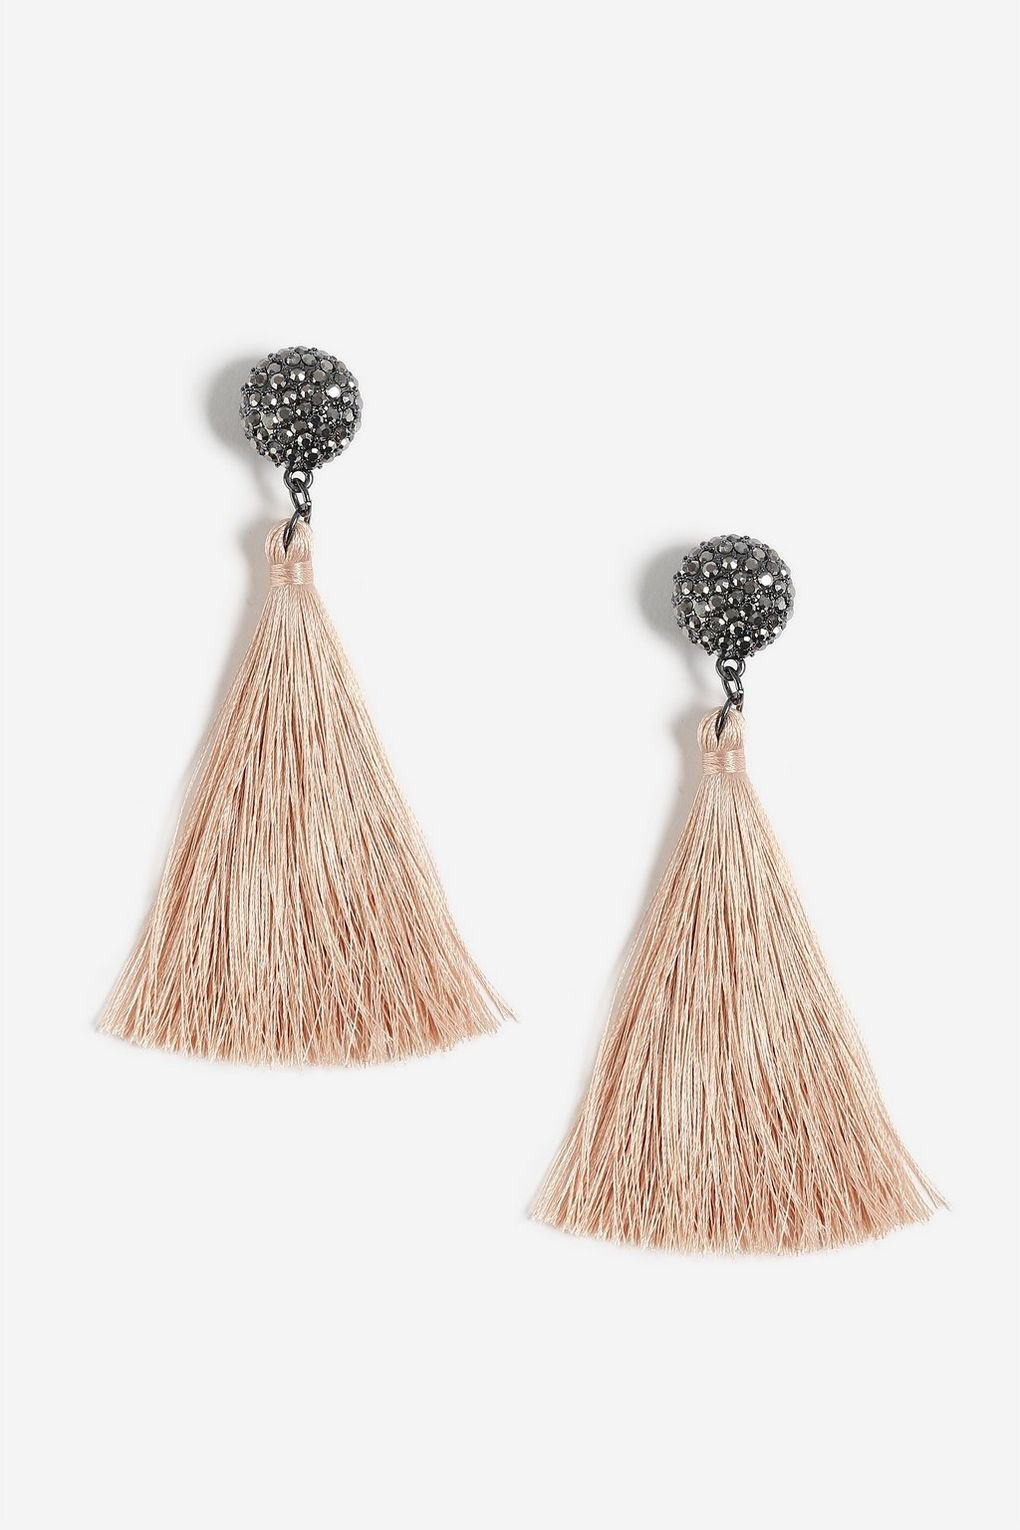 Rhinestone Topper Tassel Drop Earrings - Jewellery - Bags & Accessories - Topshop